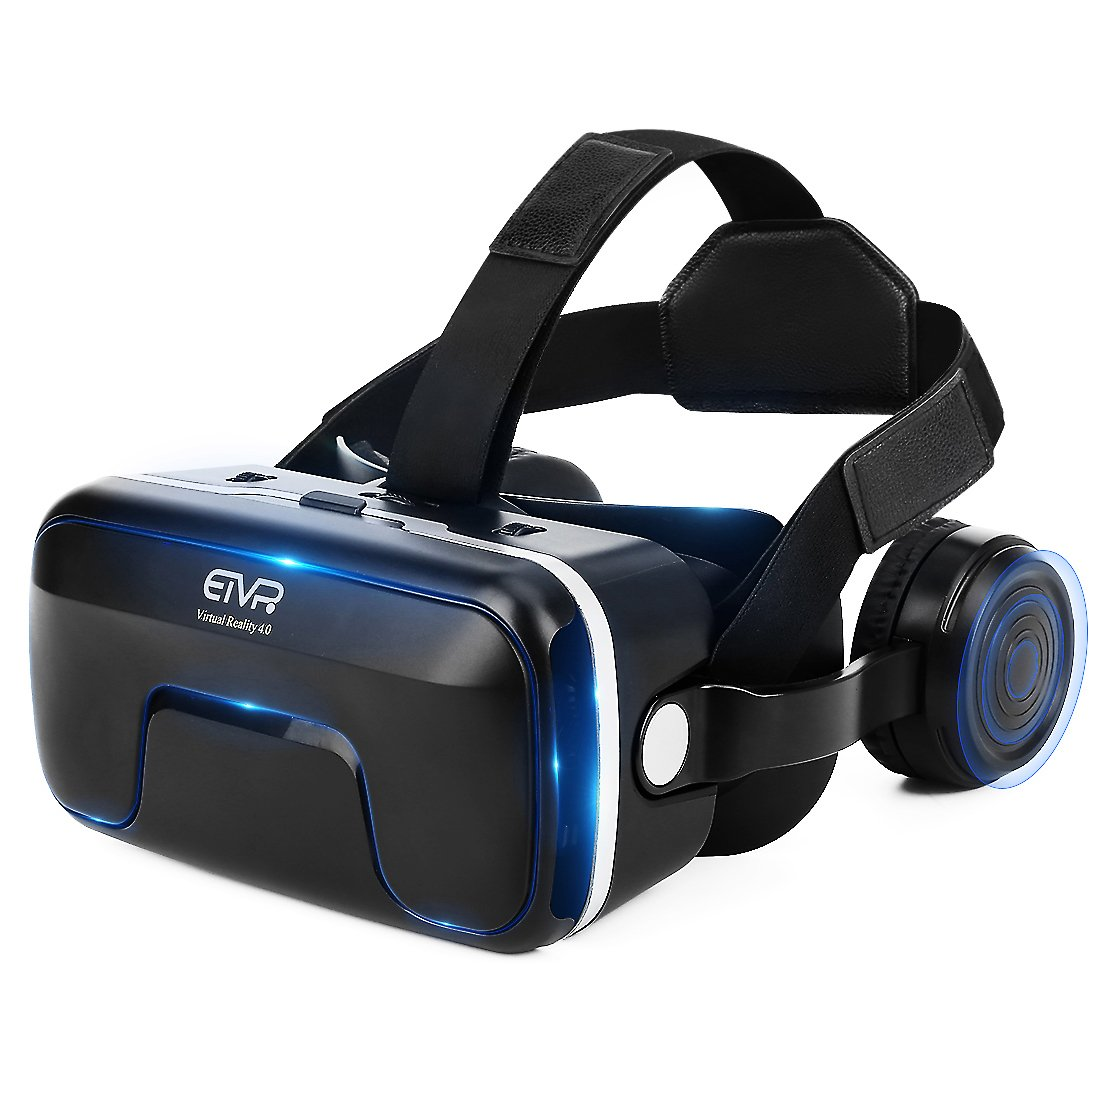 ETVR 3D VR Glasses Virtual Reality Headset for 3D Movies & VR Games with Stereo Adjustable Headphone Compatible with iPhone and Android Smartphones within 4.7-6.0 Inches by ETVR